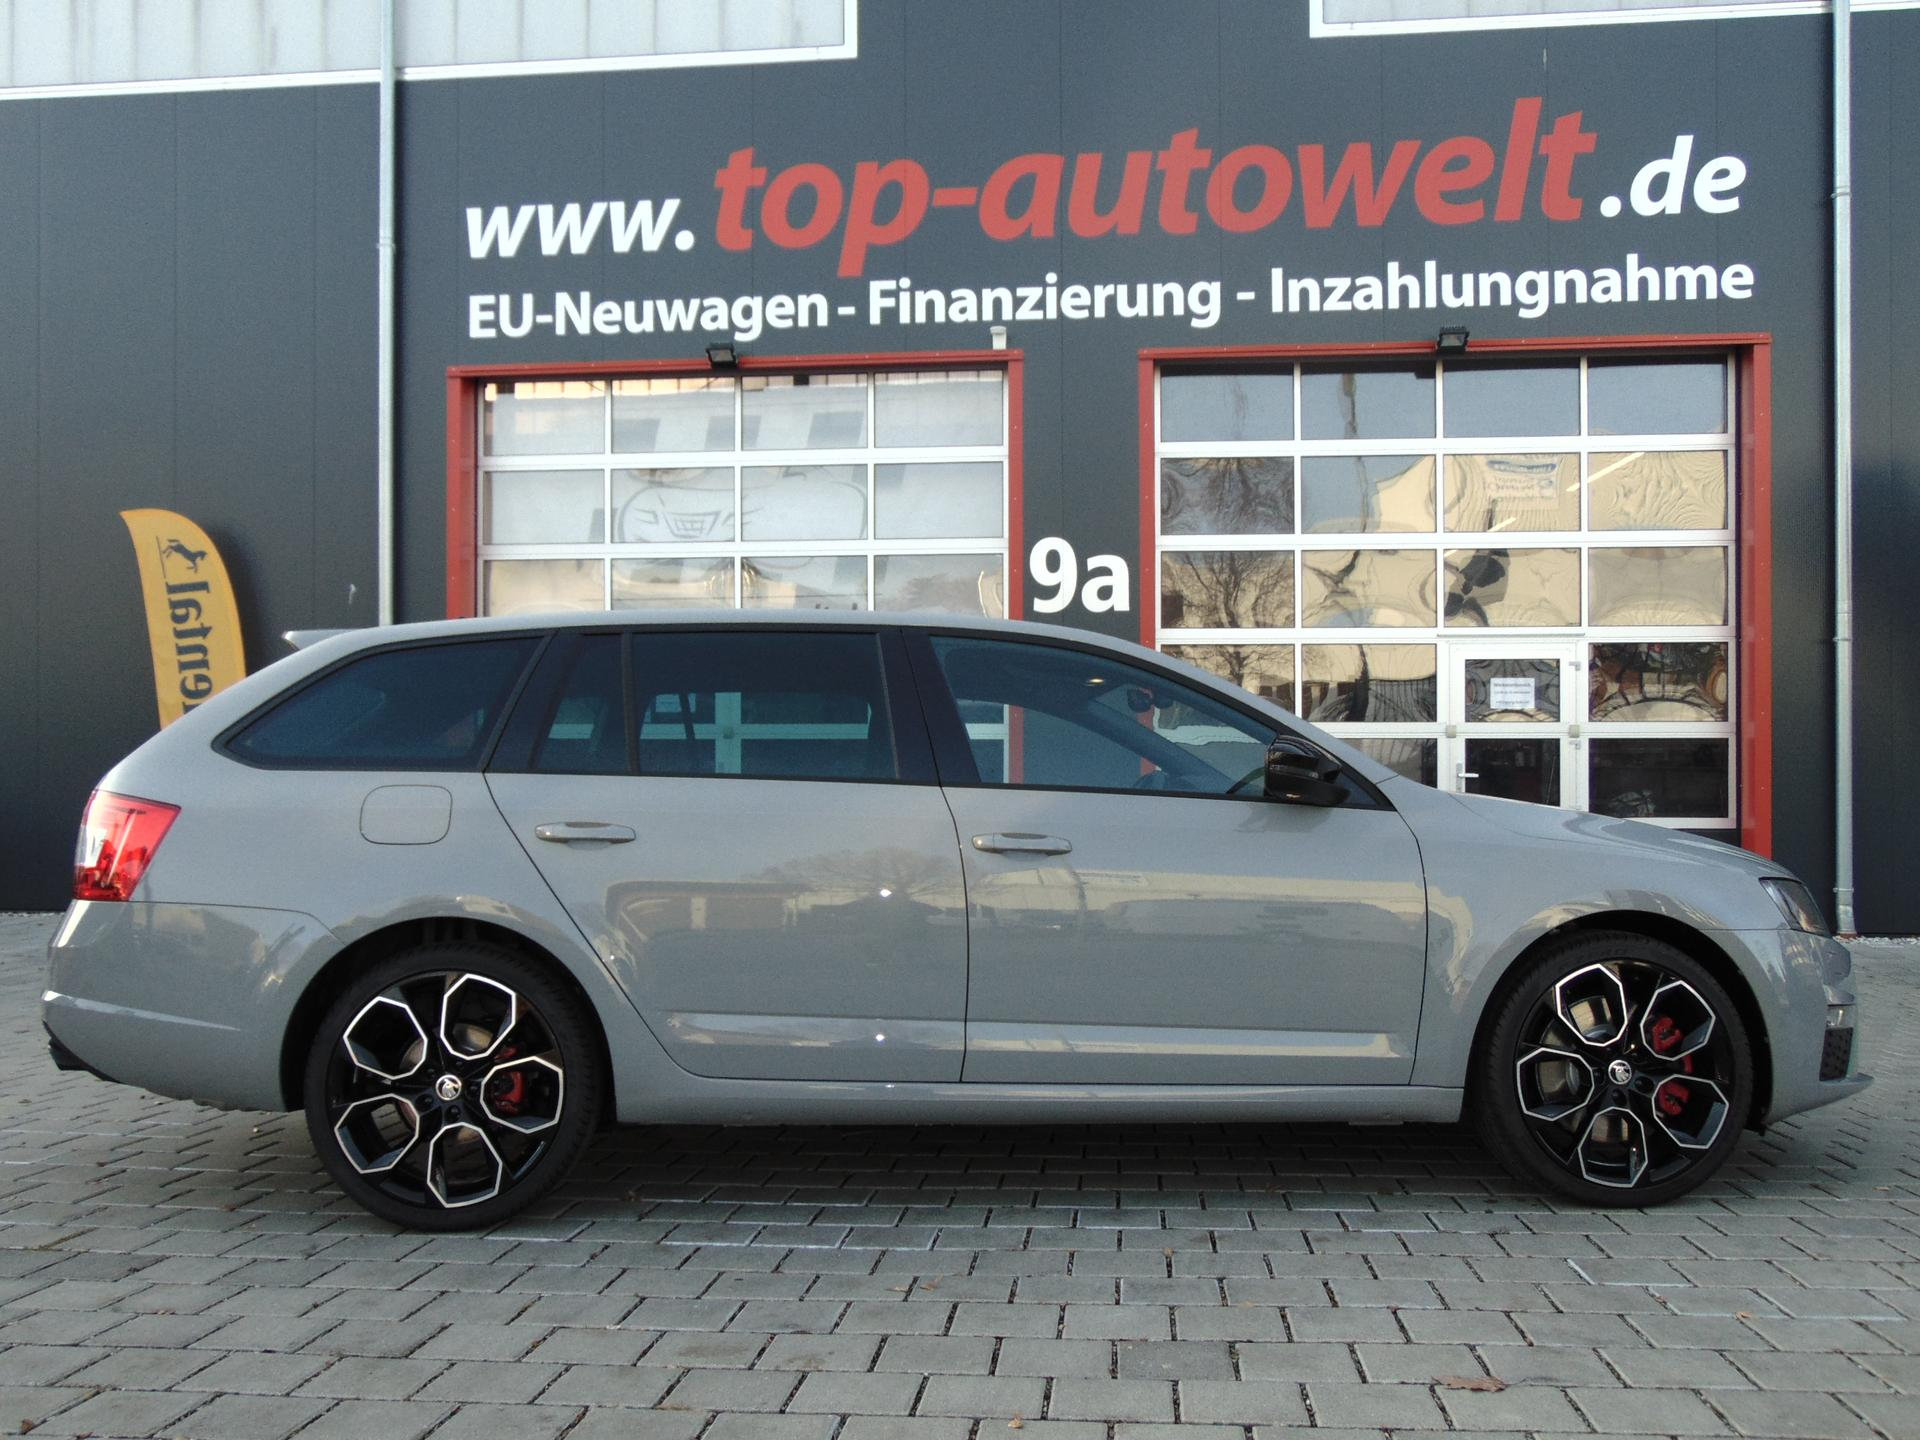 skoda octavia rs combi 245 2 0 tsi dsg led licht 19 alu climatronic leder alcantara shz pdc. Black Bedroom Furniture Sets. Home Design Ideas